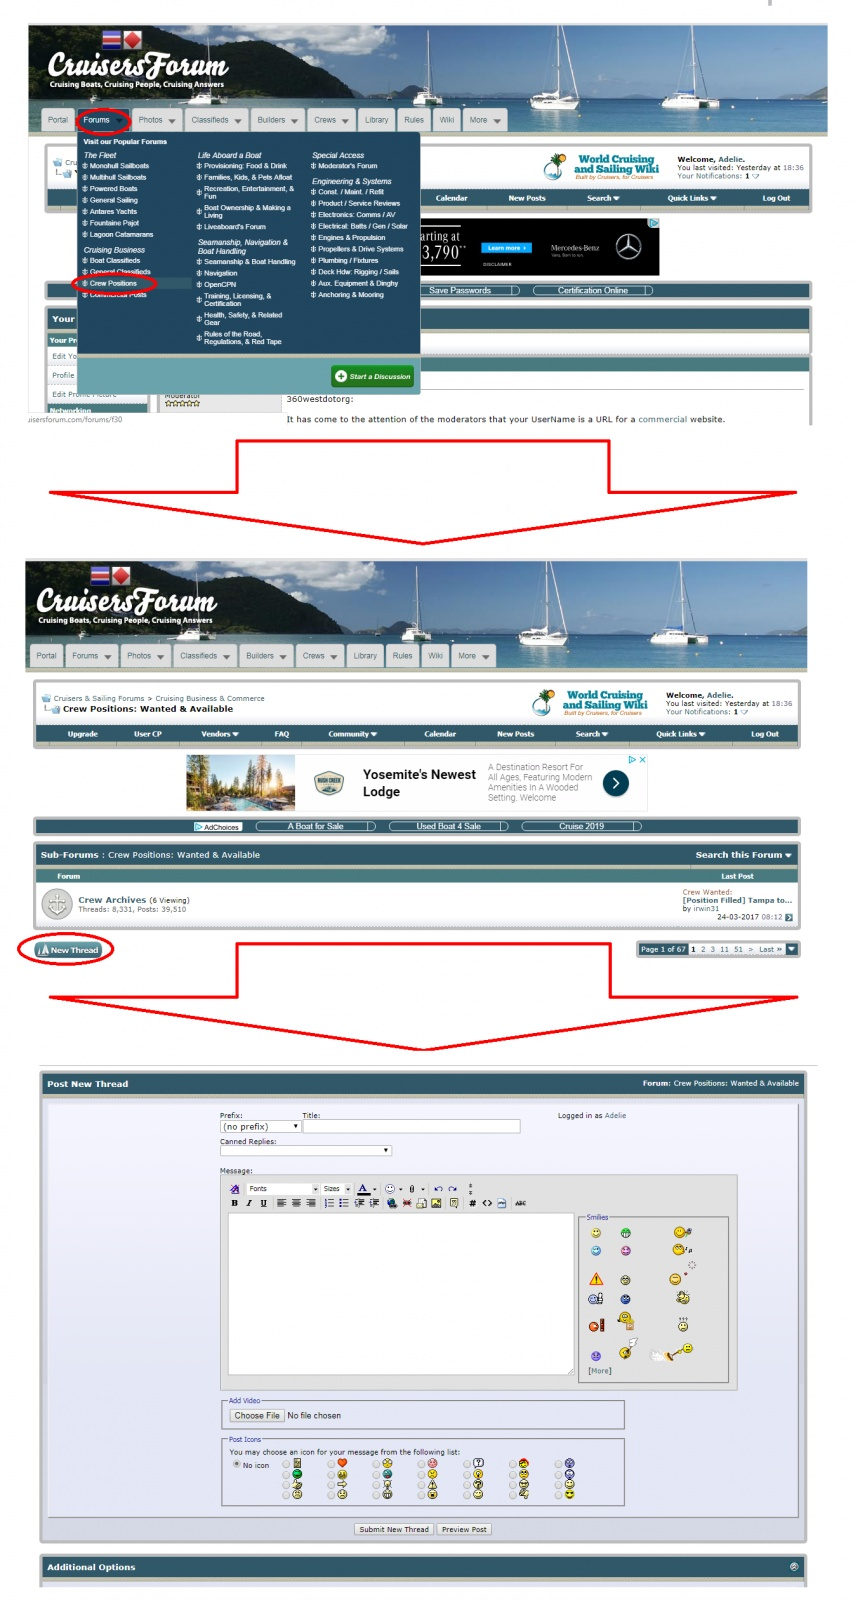 Click image for larger version  Name:CF Start New Thread.jpg Views:7 Size:363.7 KB ID:185059